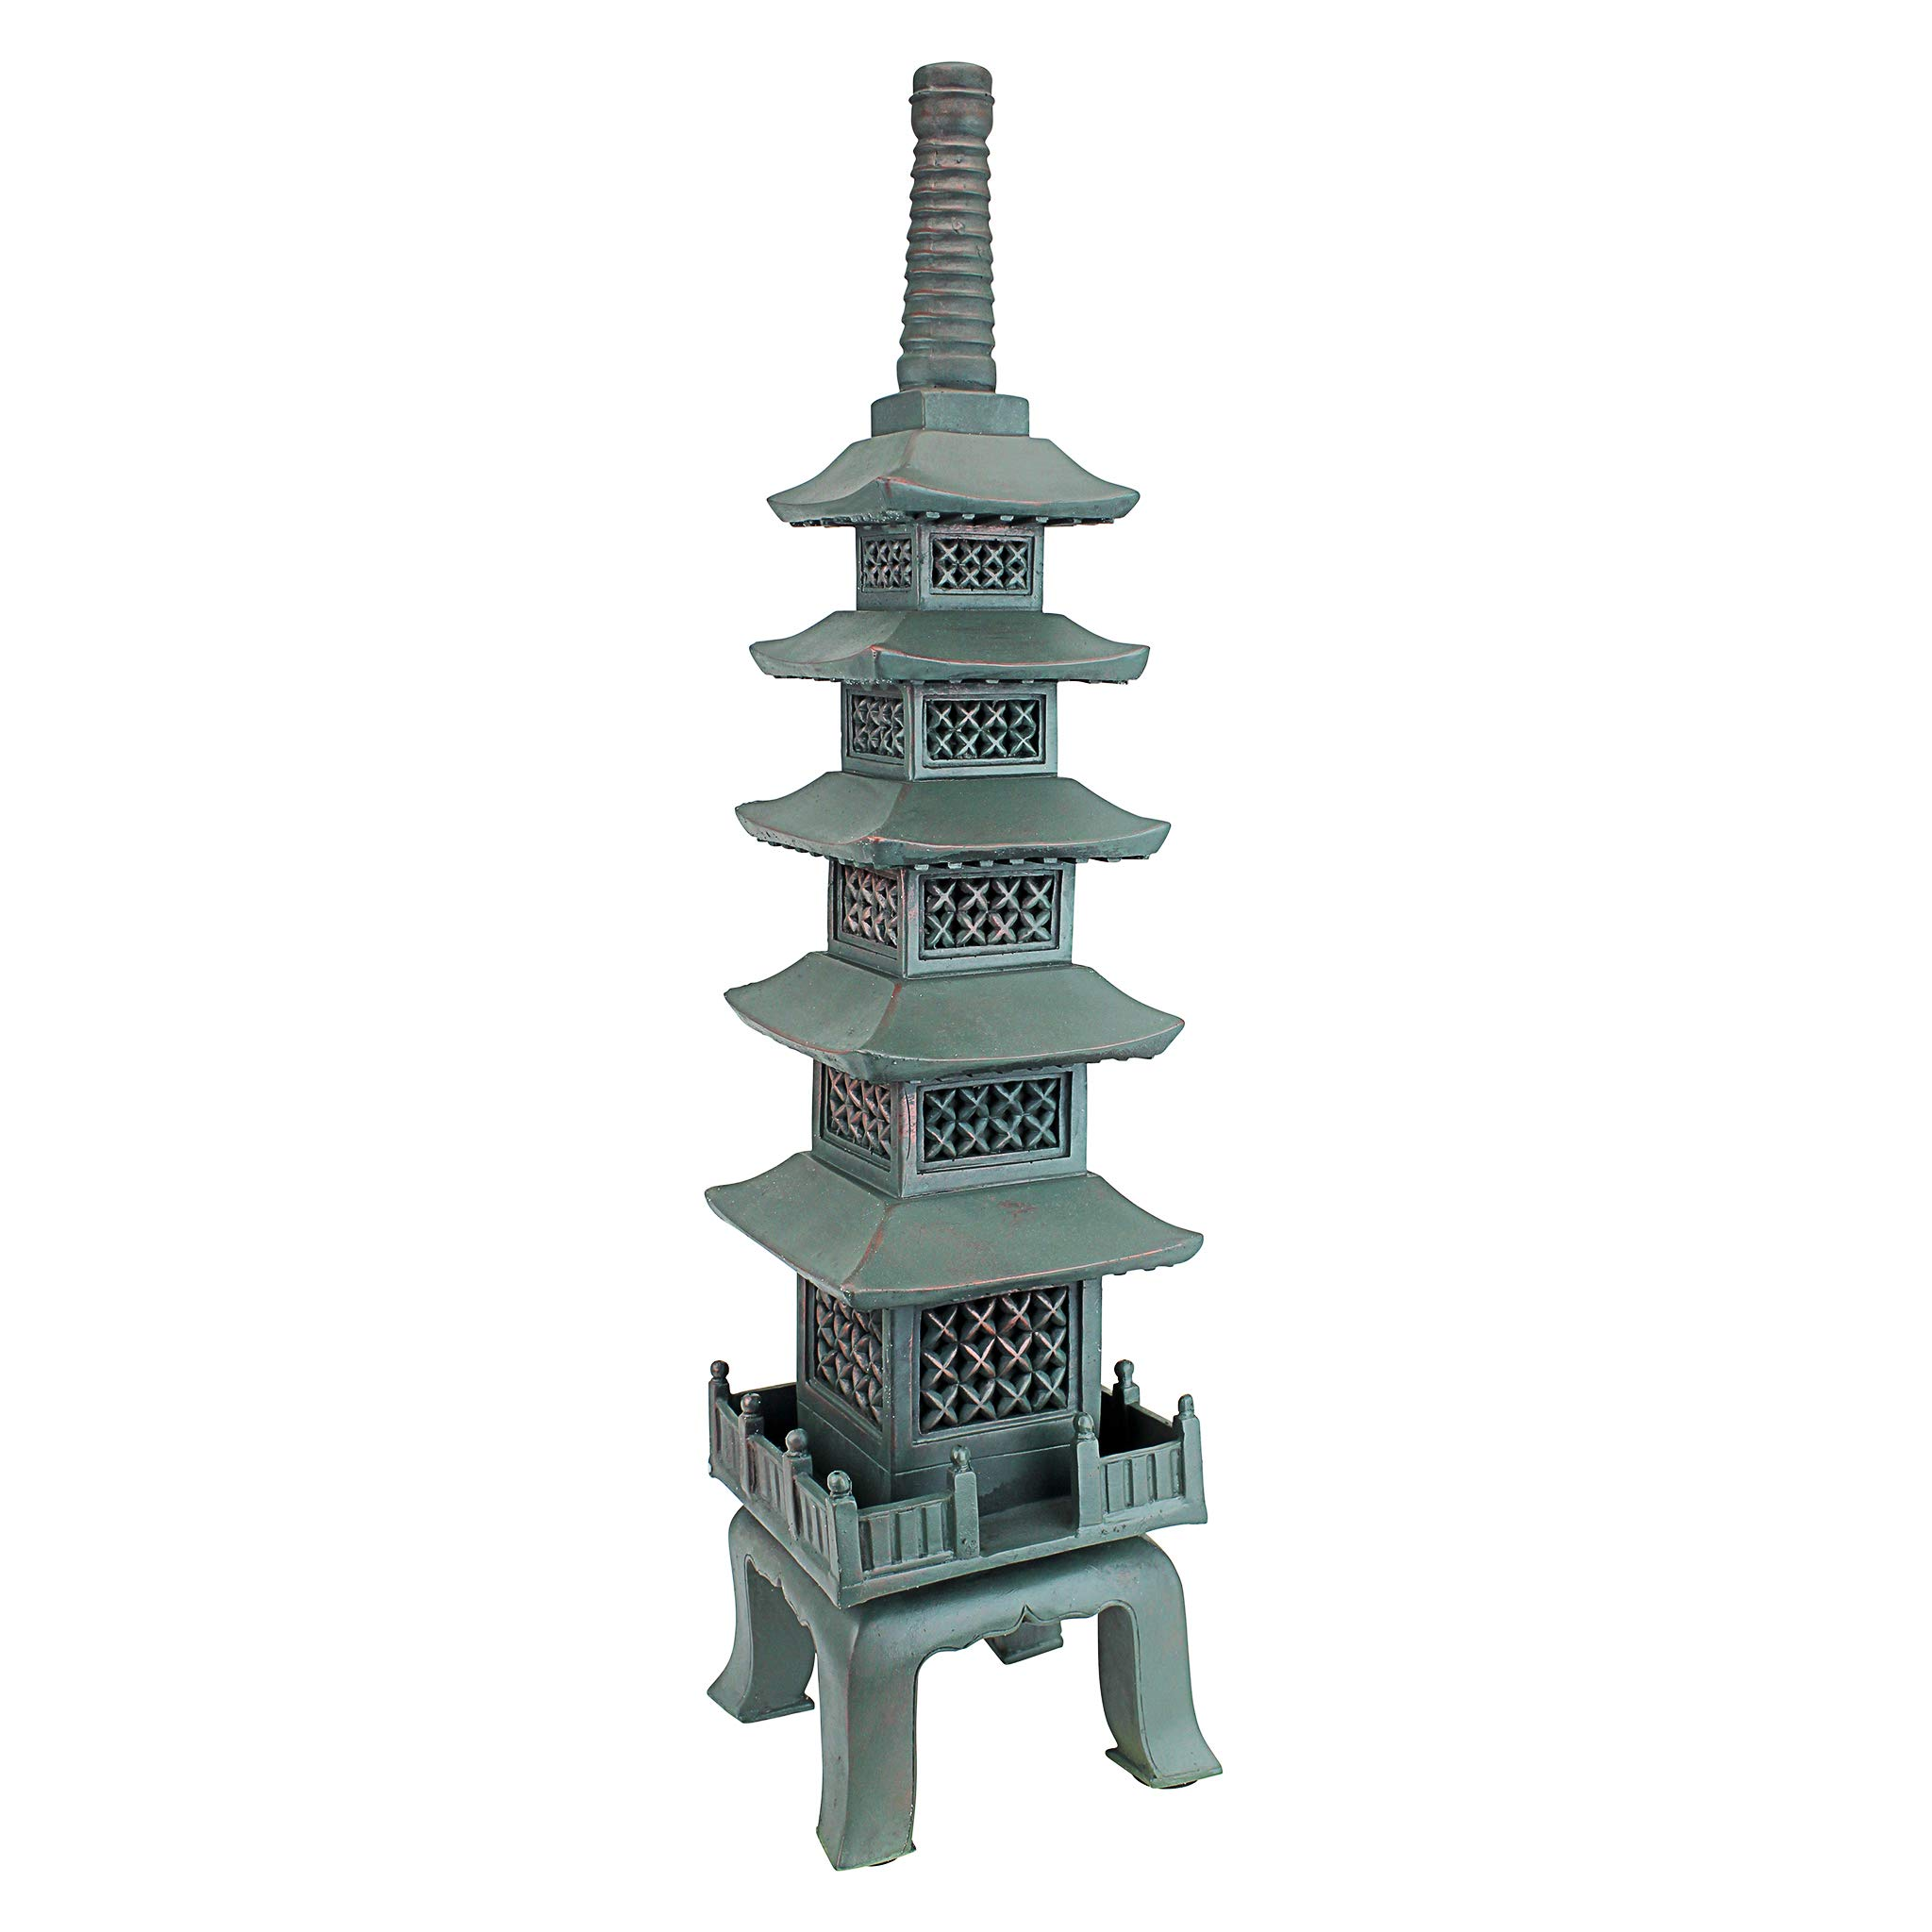 Design Toscano The Nara Temple Pagoda Asian Decor Garden Statue, Large 28 Inch, Polyresin, Verdigris Green Bronze